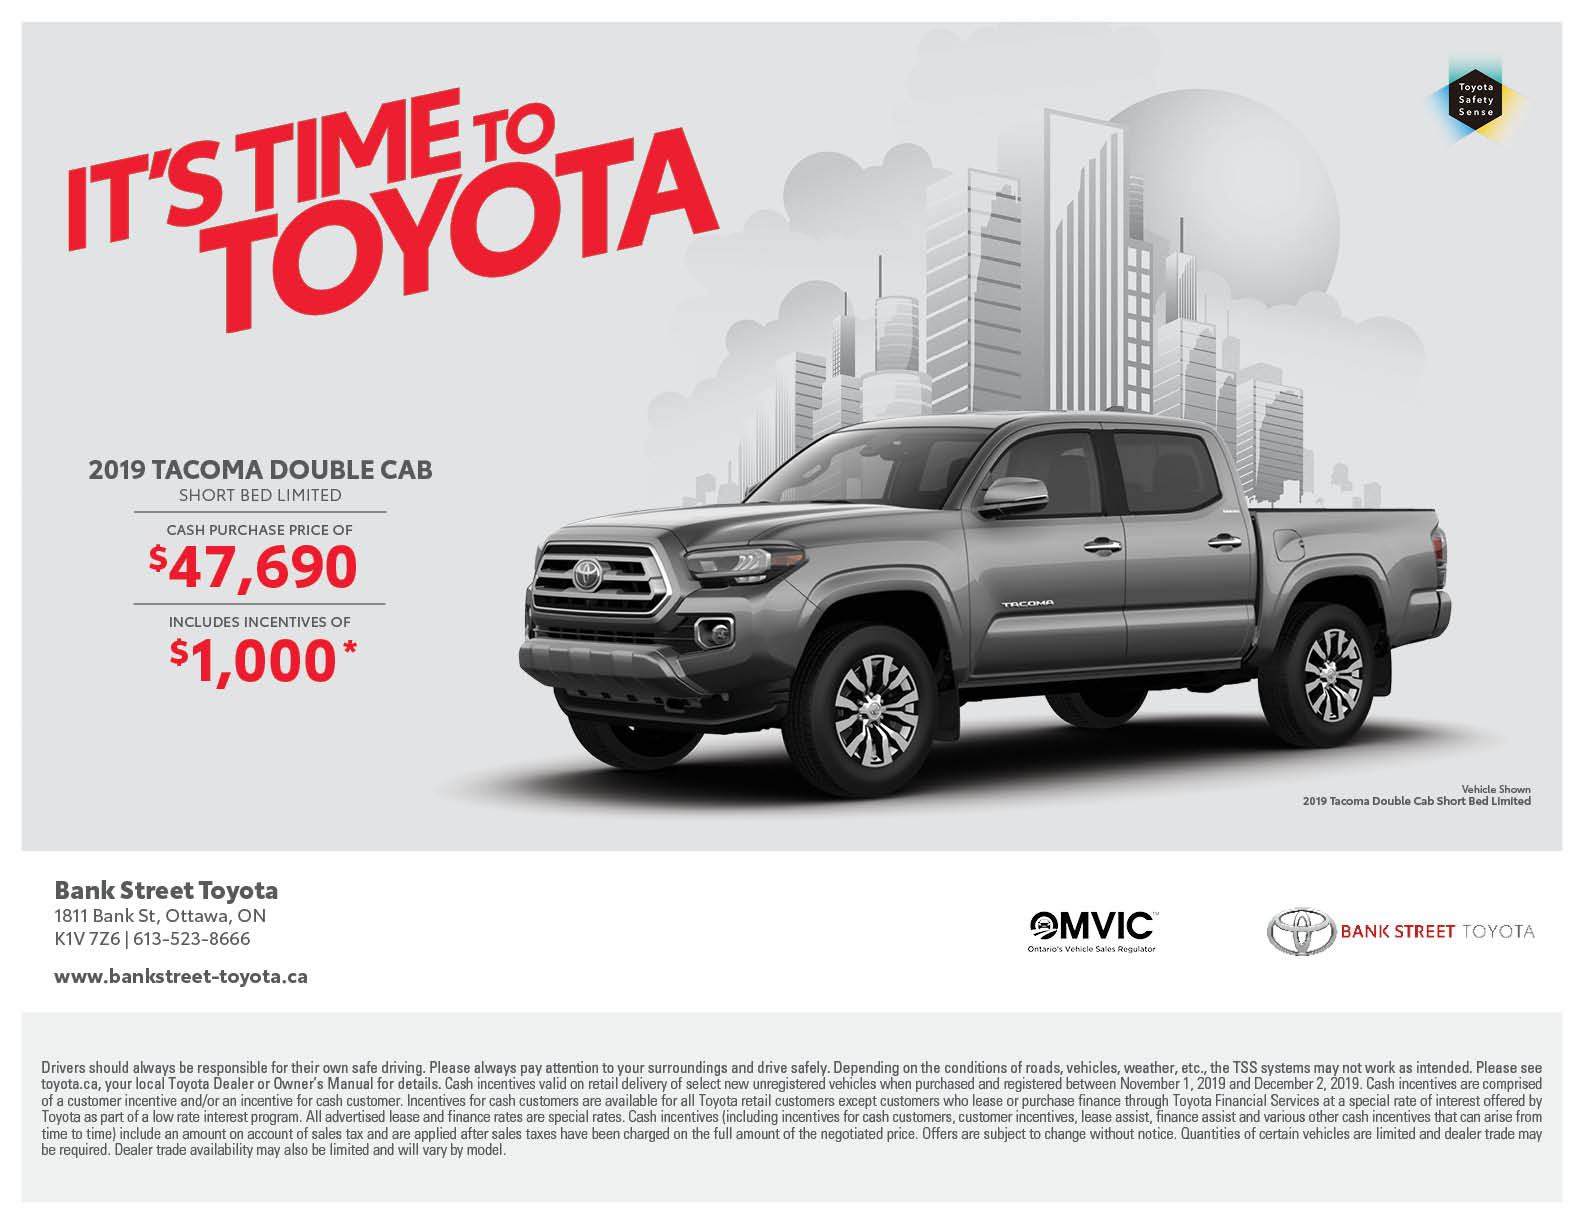 2019 Toyota Tacoma 4×4 Double Cab Short Bed Limited